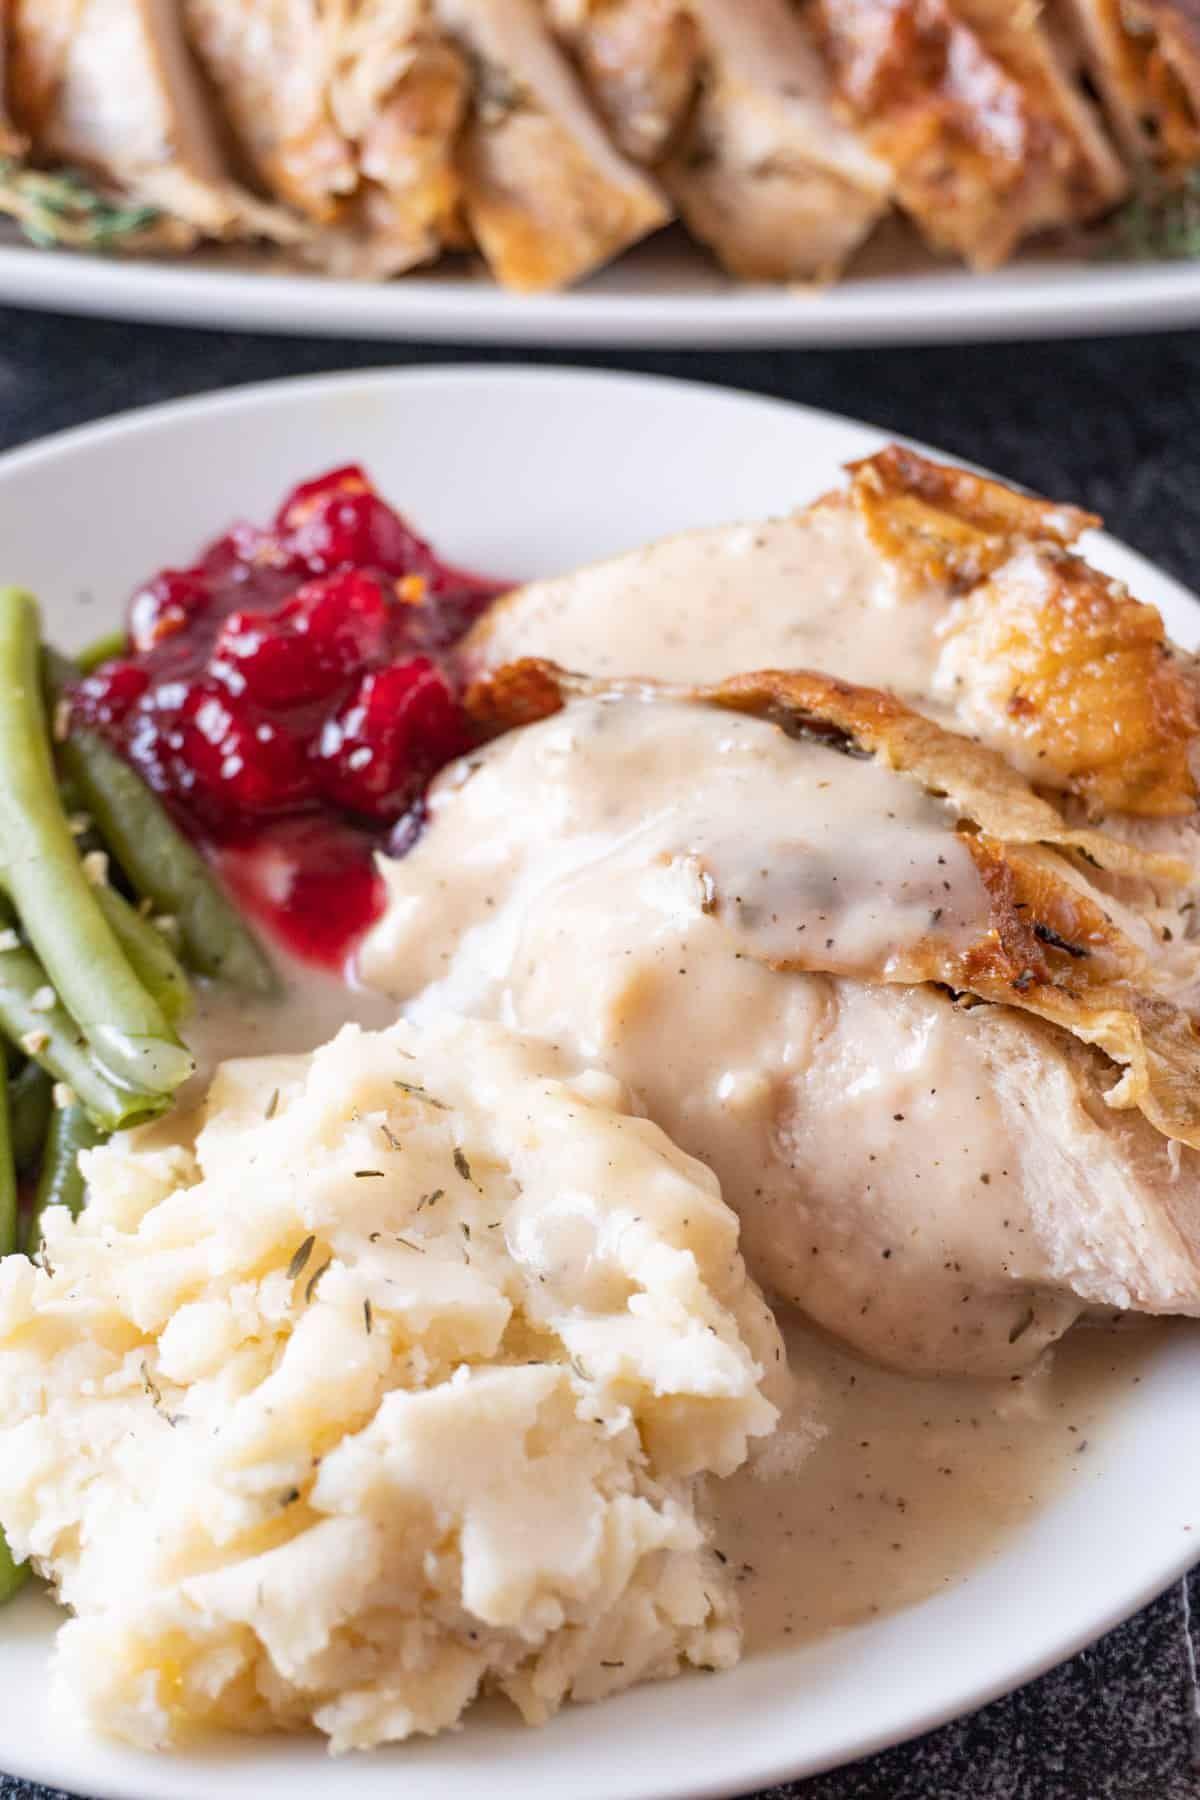 plate with turkey, mashed potatoes, green beans, cranberry sauce and gravy